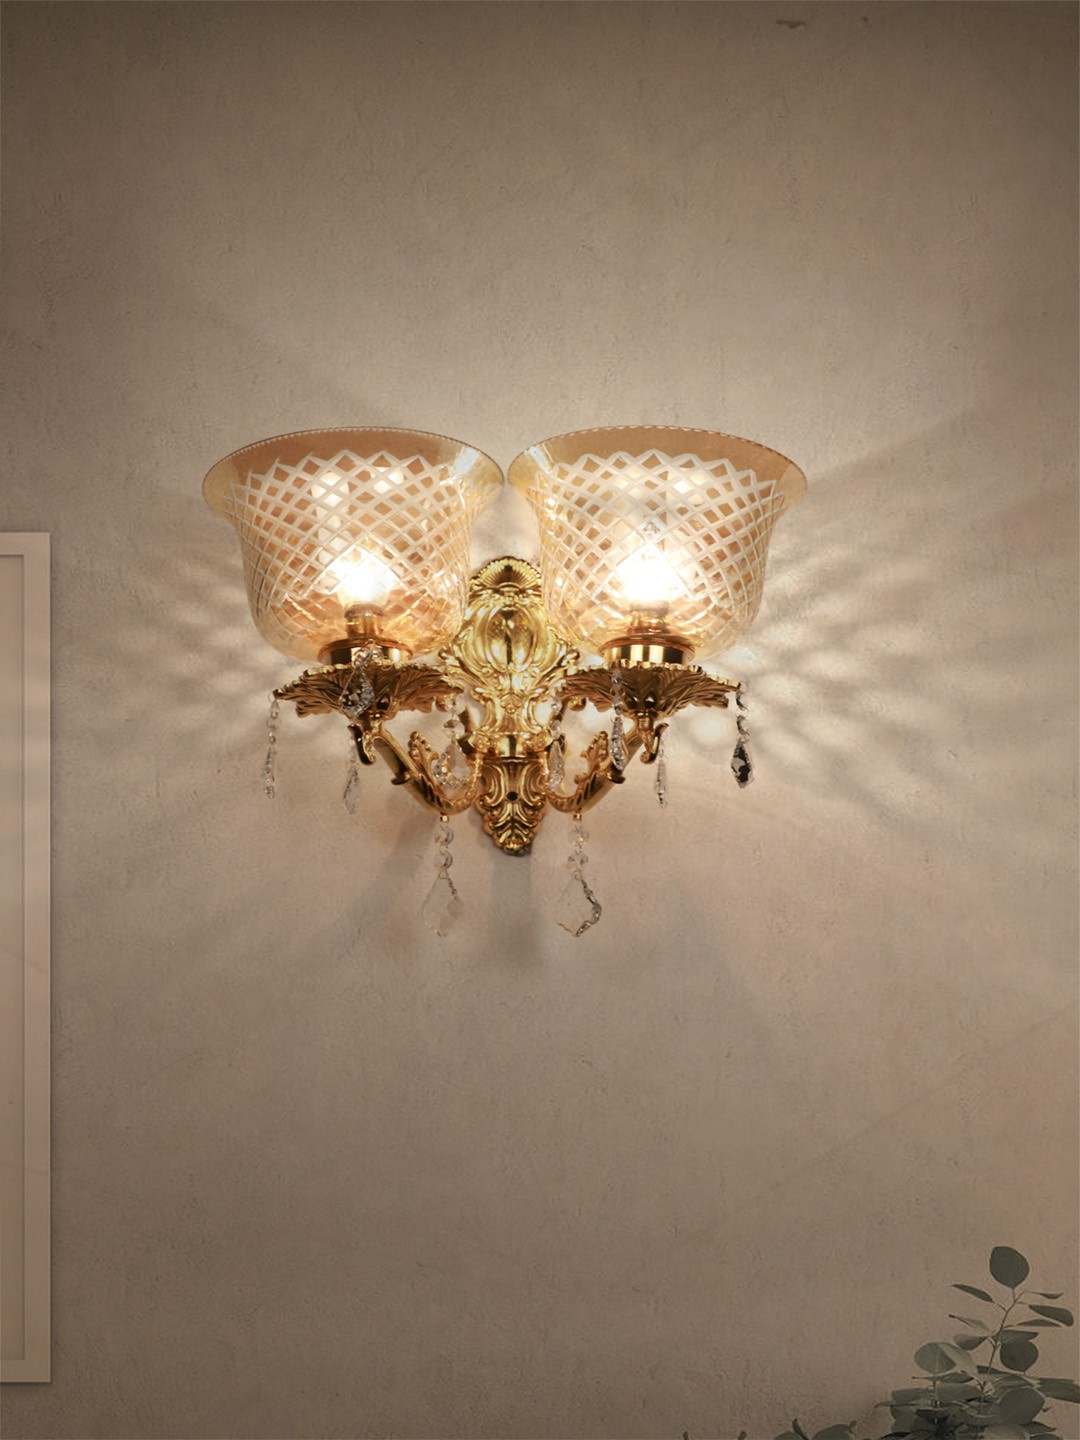 Majestic Gold & Crystal Aluminium Double Wall Sconce with Golden Hand Cut Glass Shades